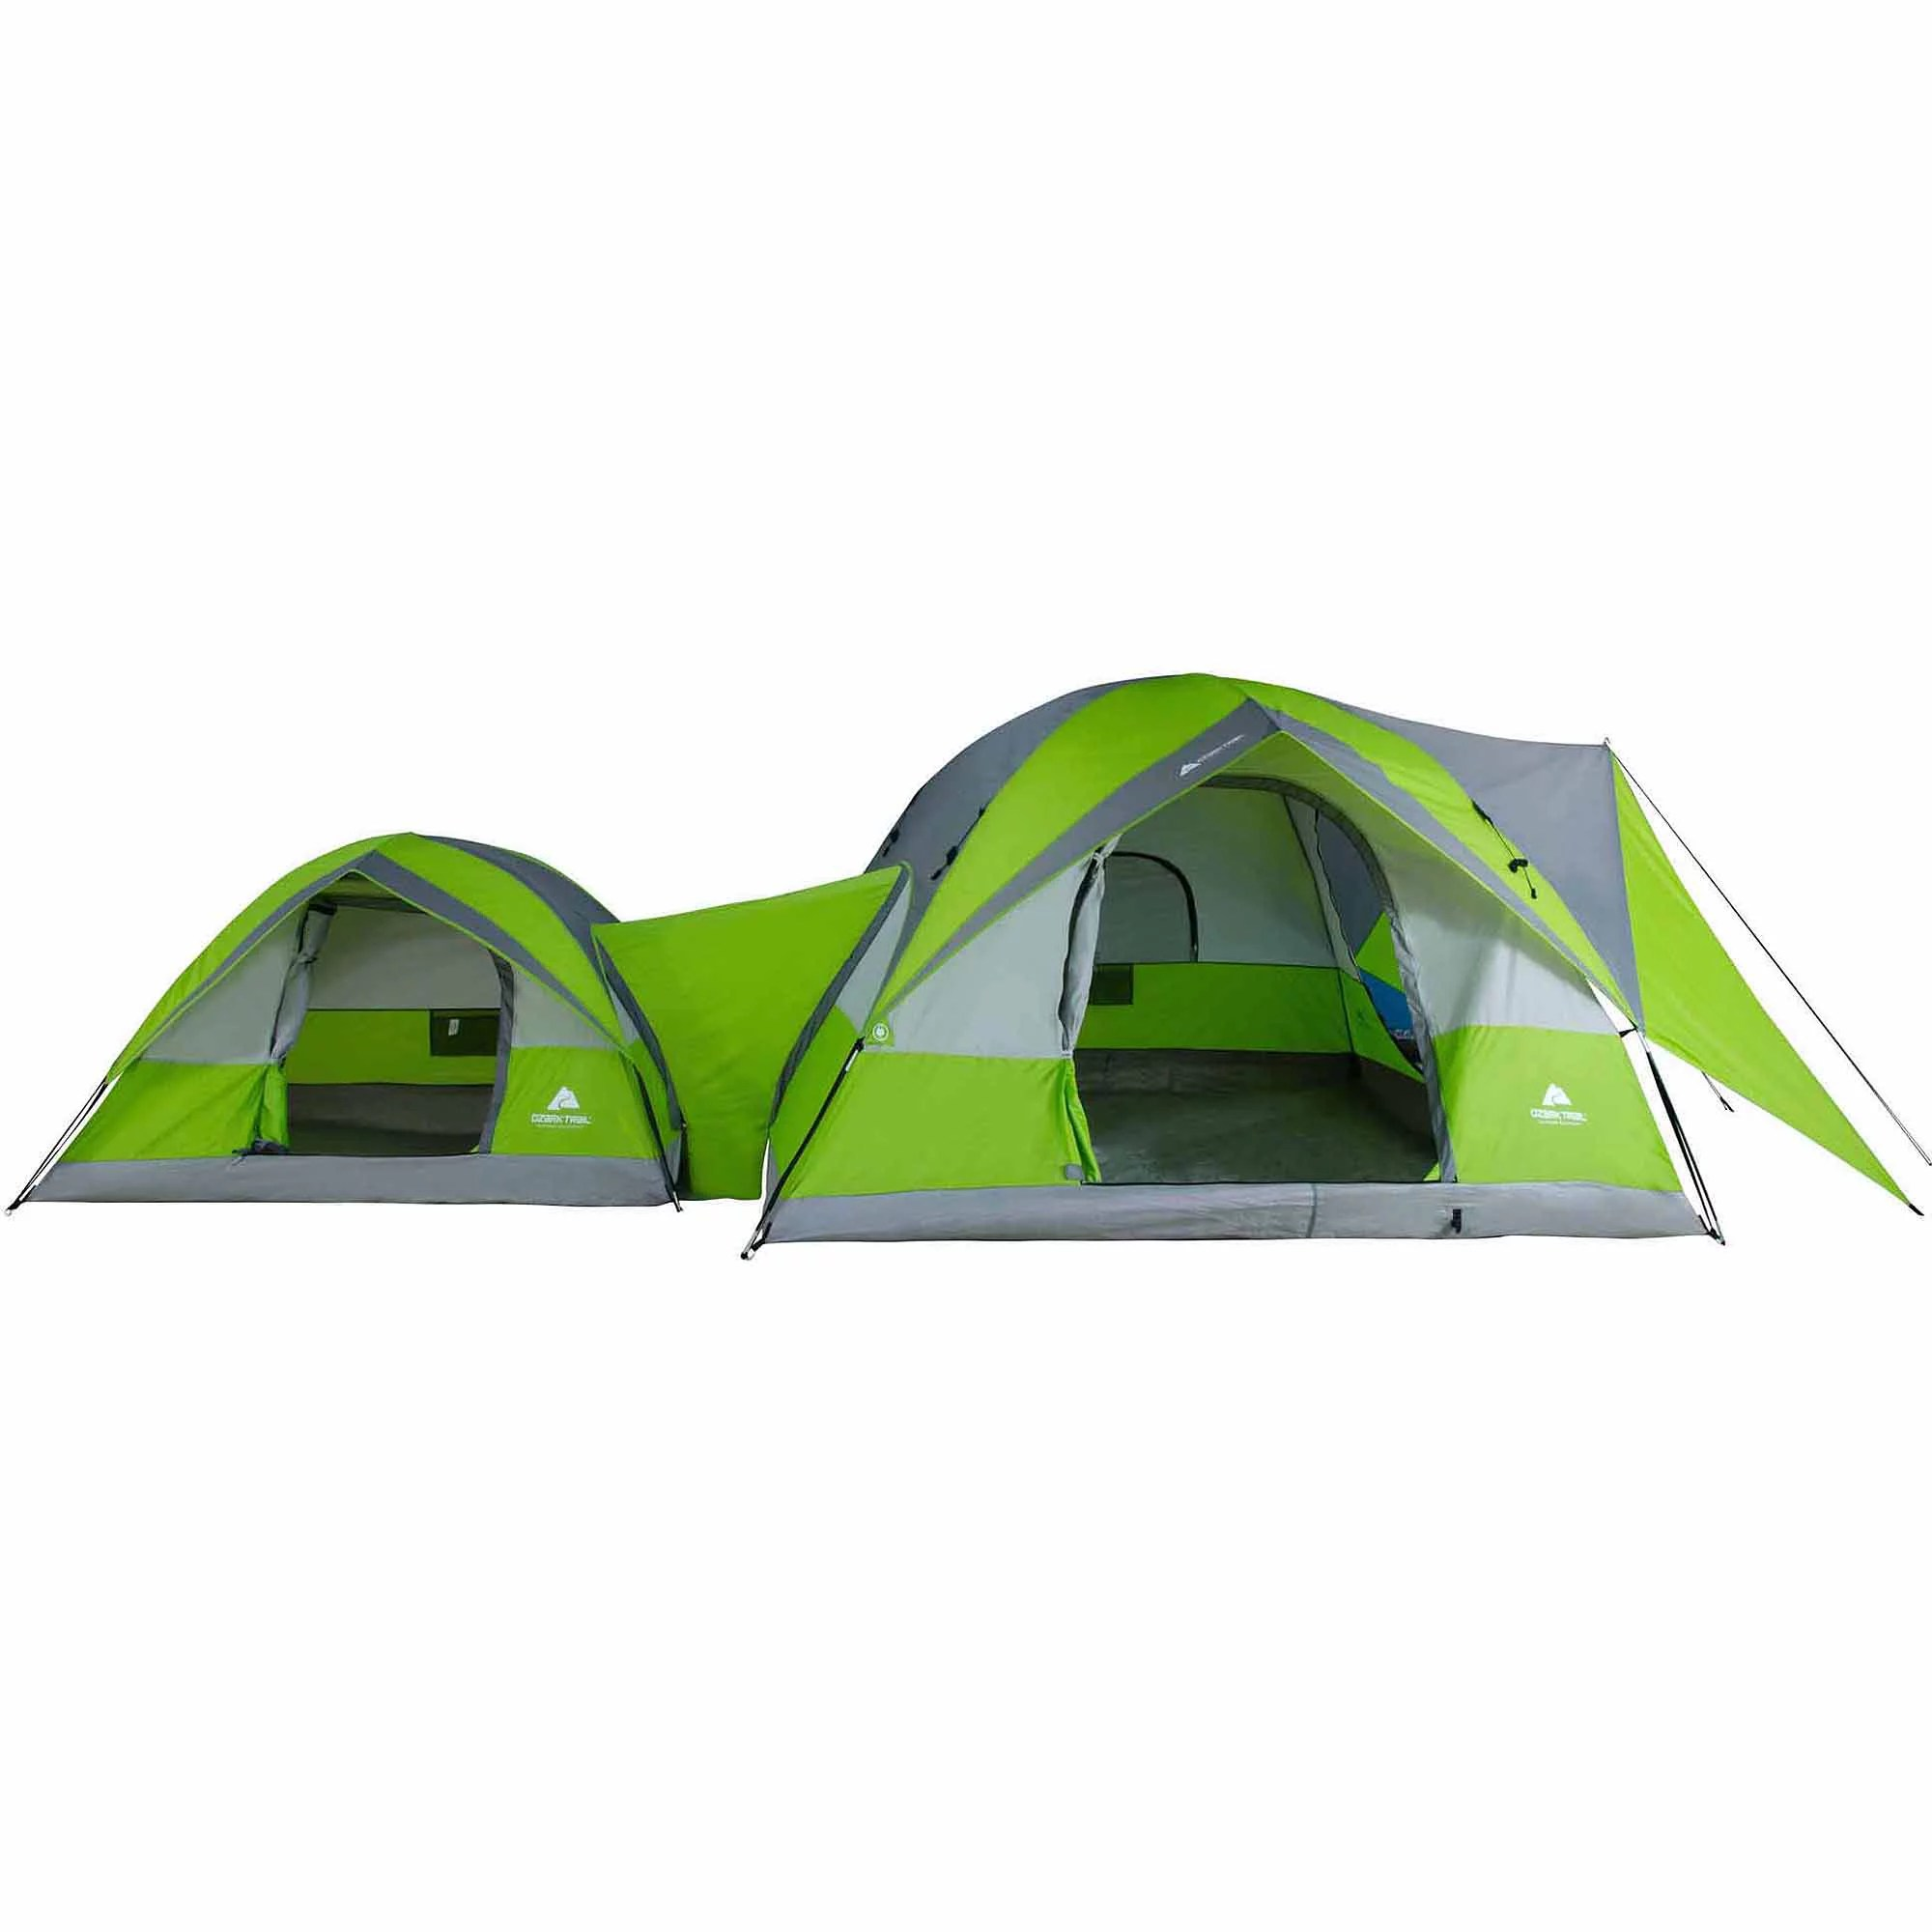 Ozark Trail 2-Dome Connection C&ing Tent for 8 People is also on clearance ...  sc 1 st  Holiday Deals and More.com & Tons of Tents on Sale/Clearance/Rollback at Walmart! | Holiday ...